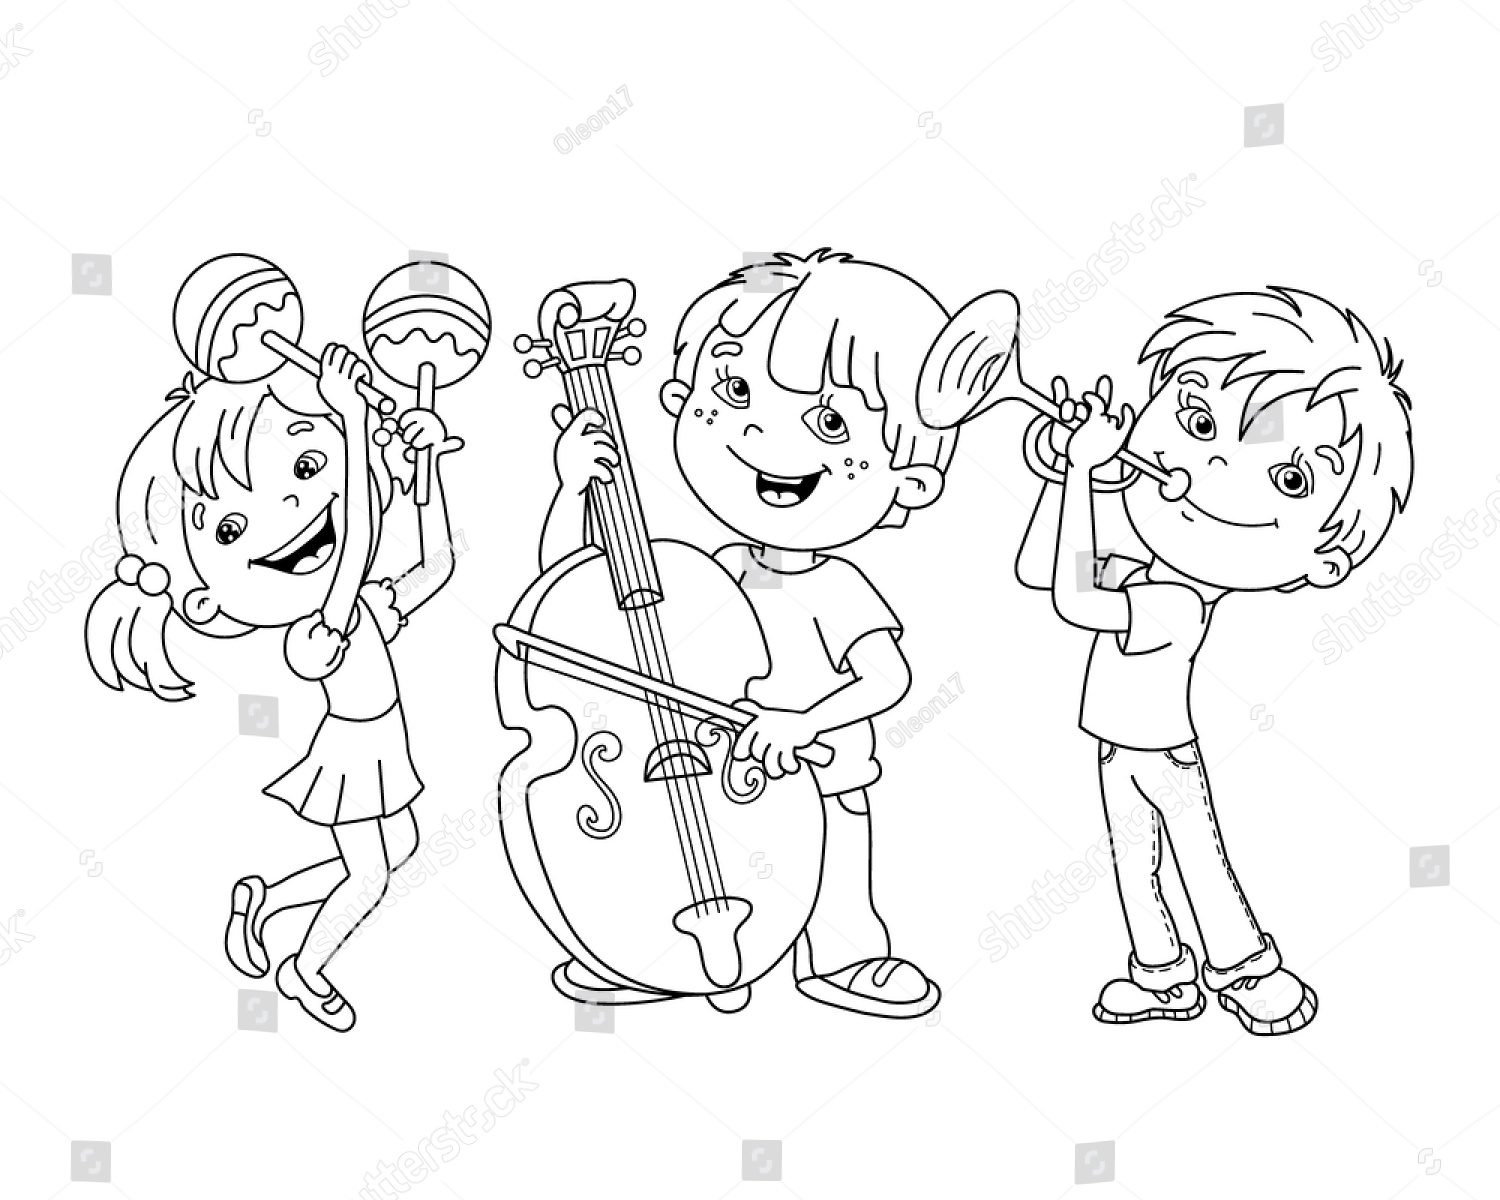 1500x1200 How To Draw Guitar For Kids Drawing Musical Instruments Coloring